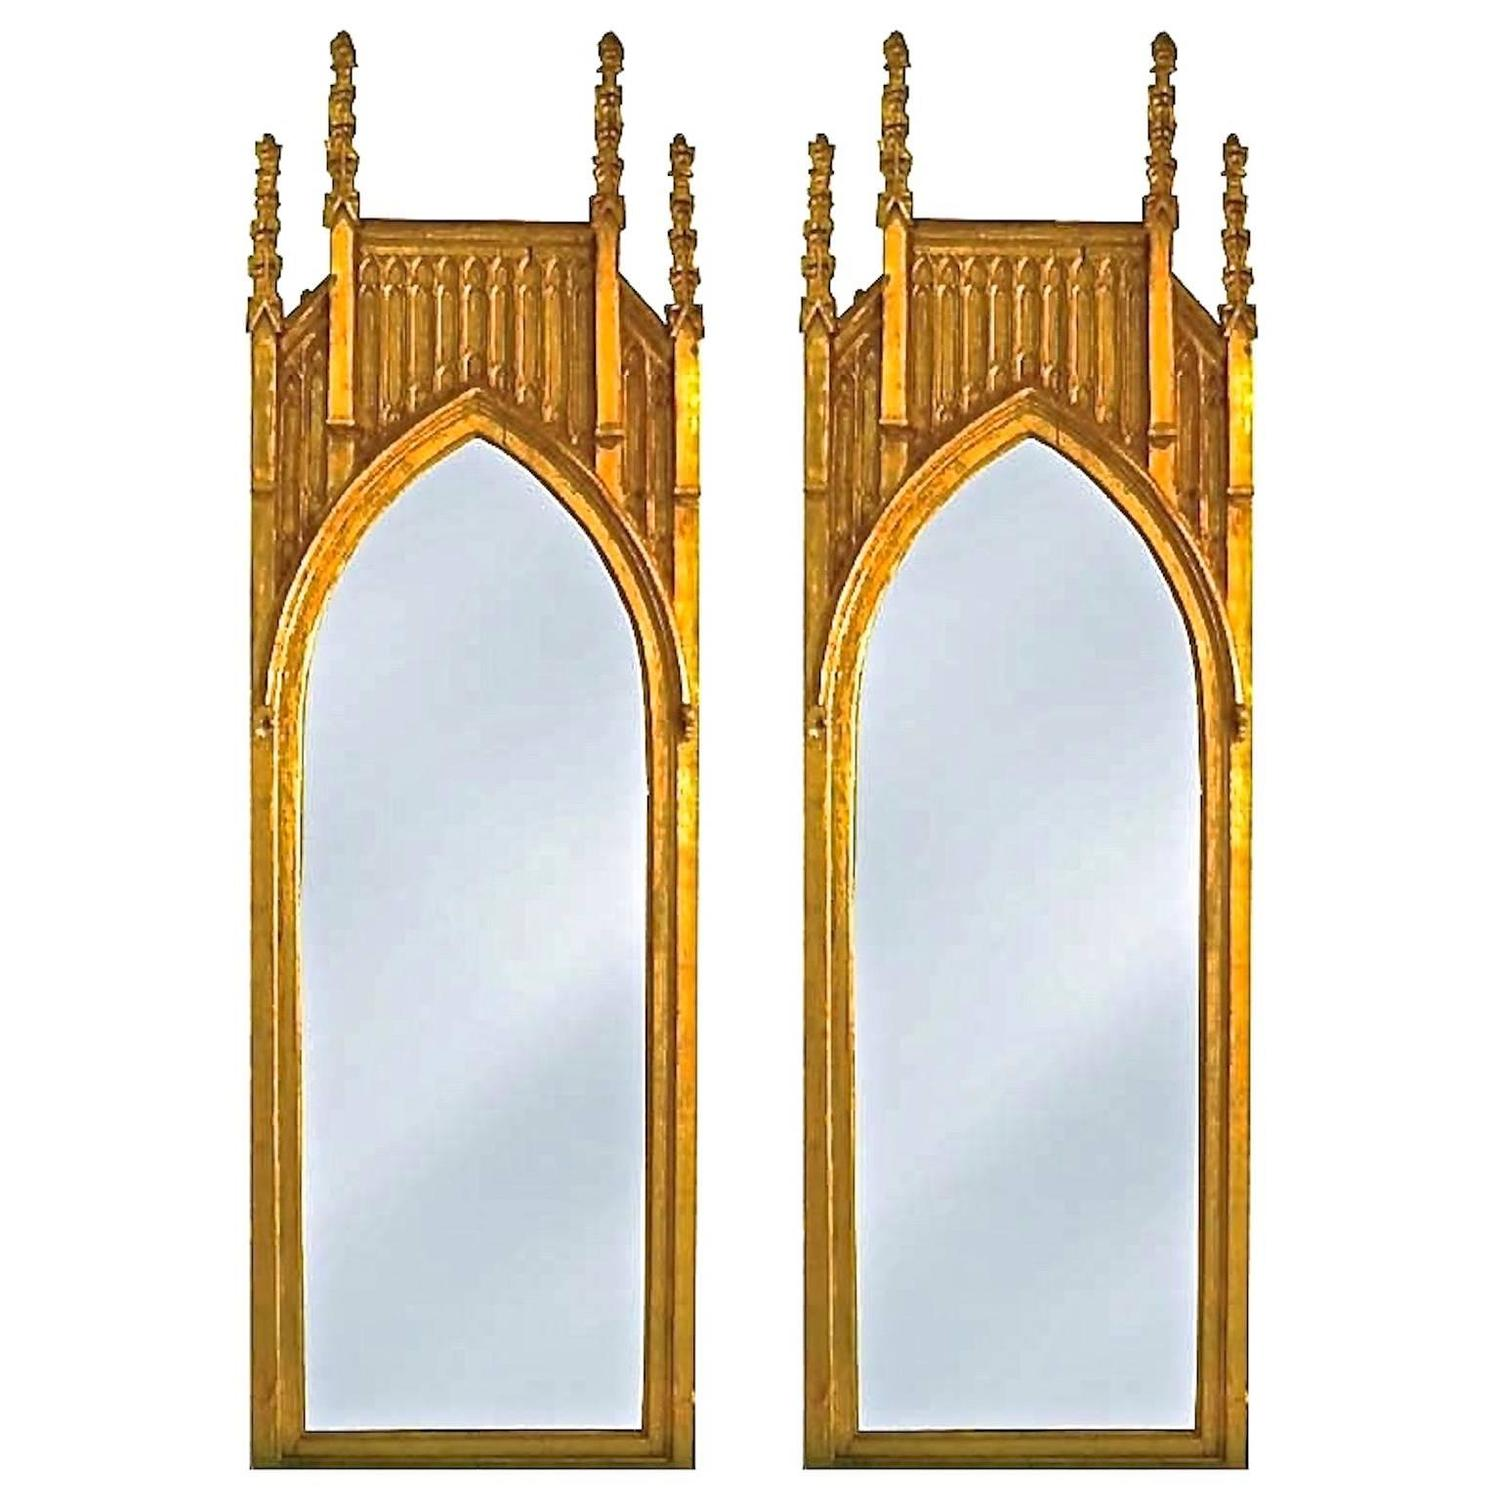 Arched gilt mirror at 1stdibs - Arched Gilt Mirror At 1stdibs 43